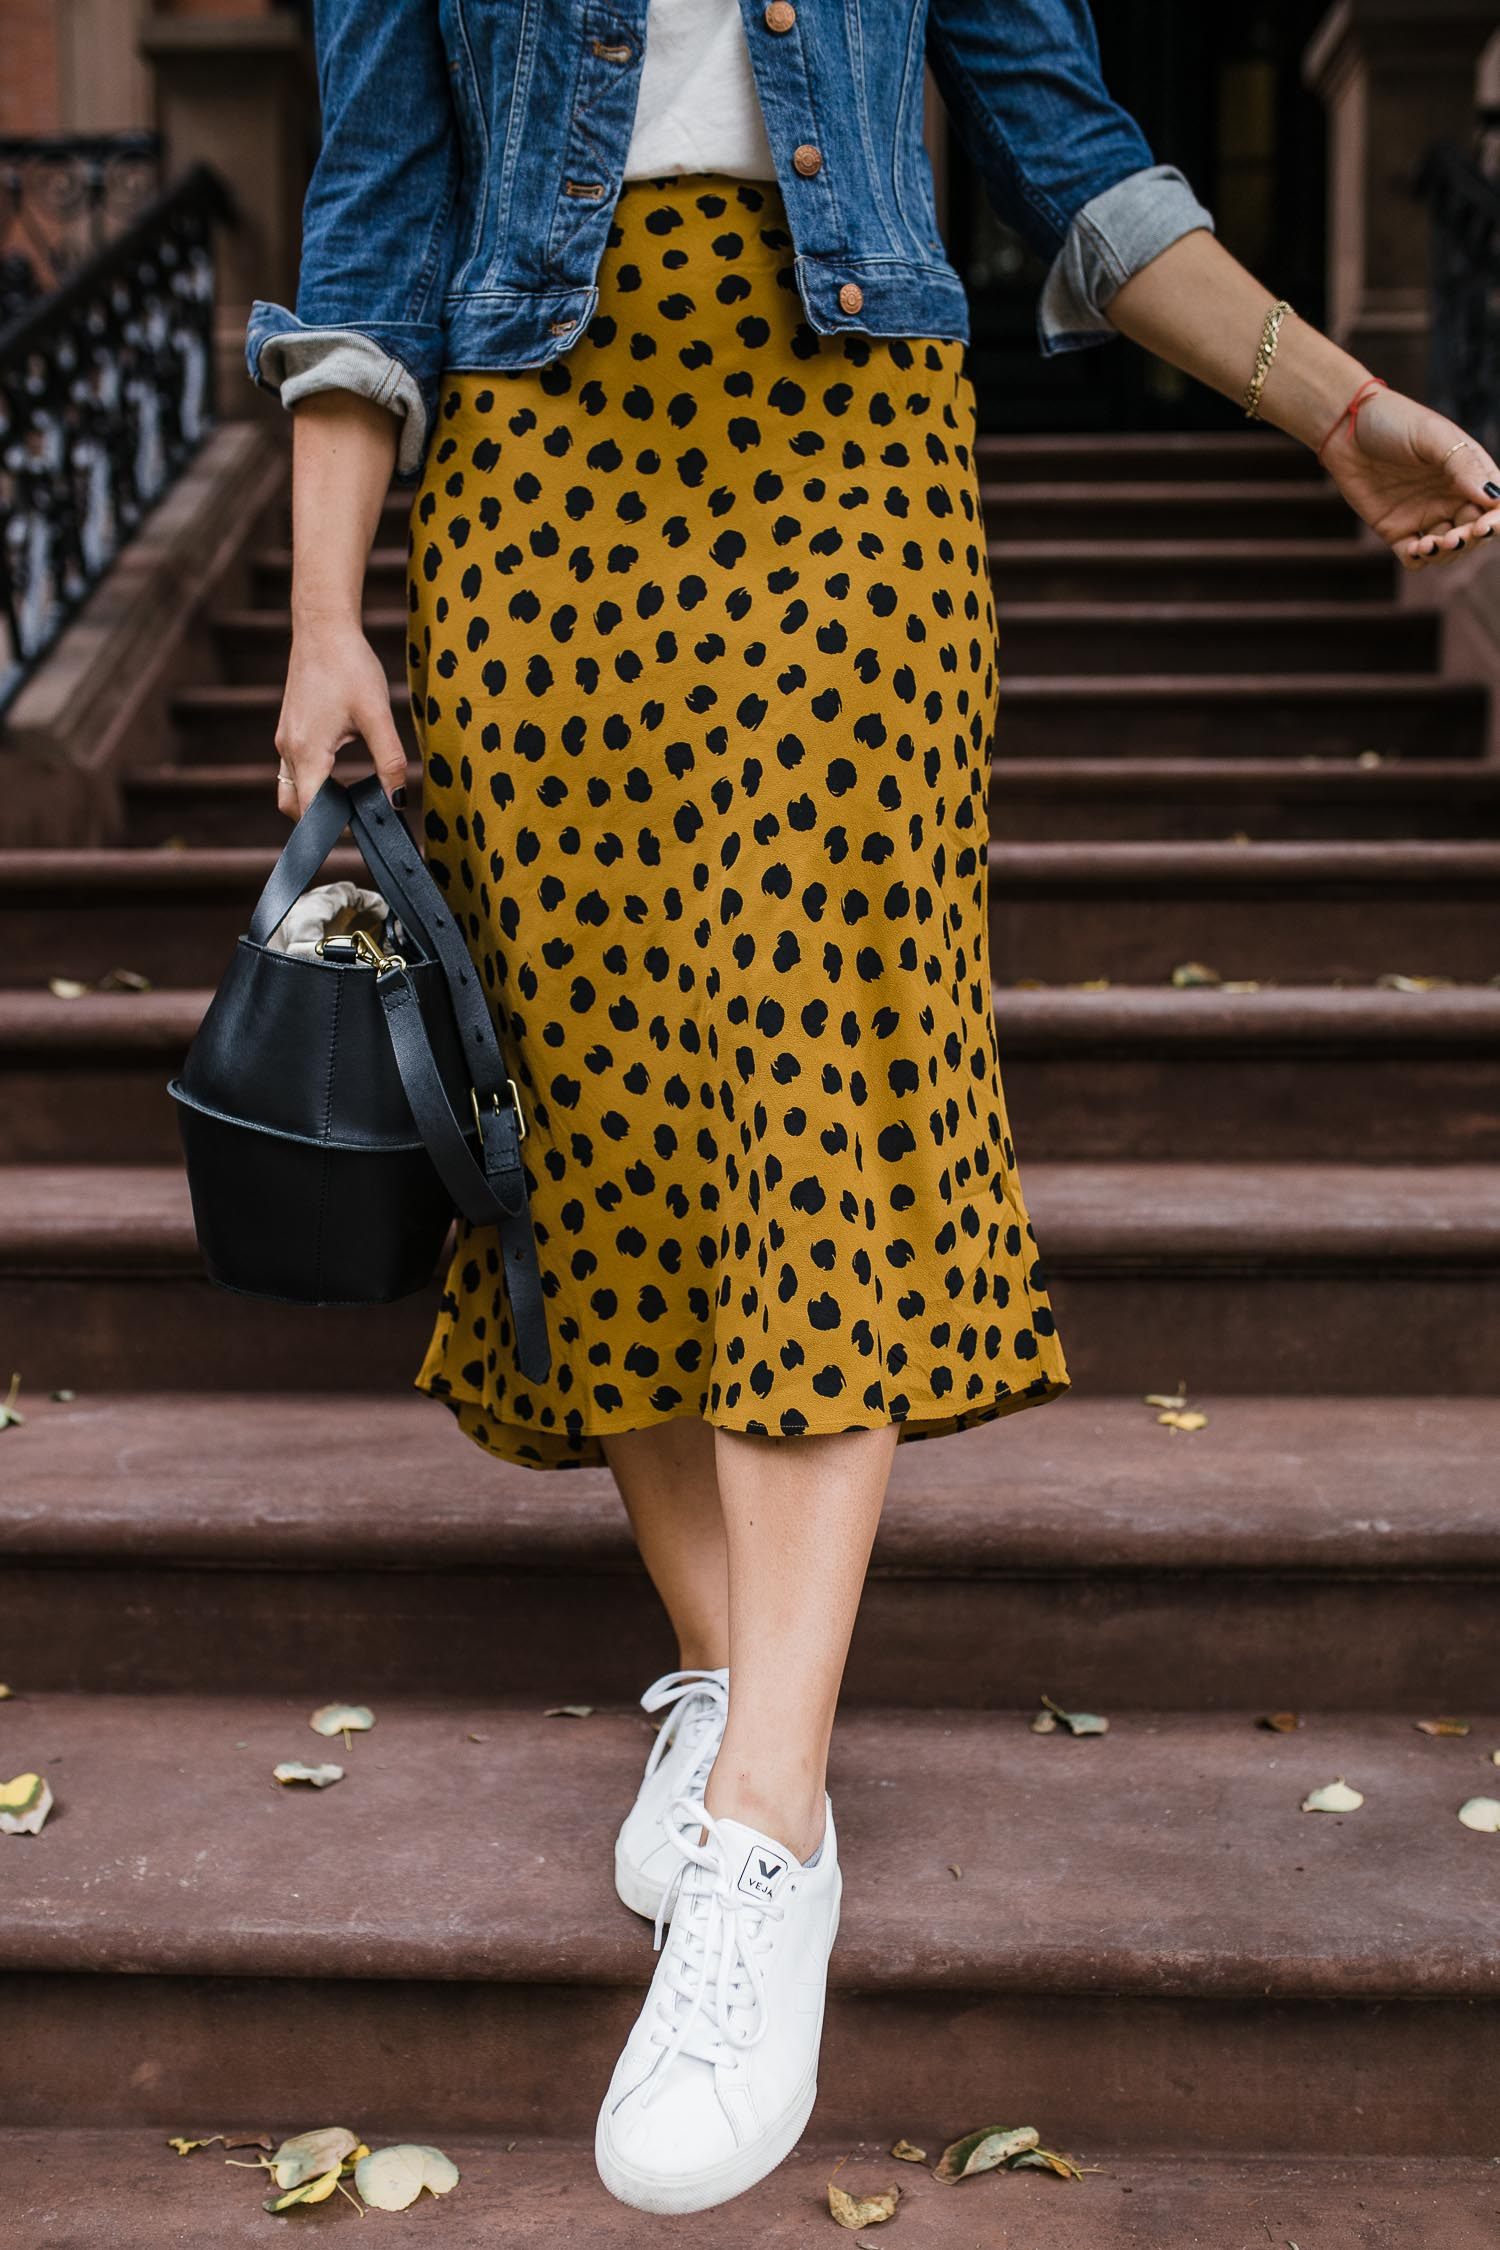 a spotted skirt that is cheetah print